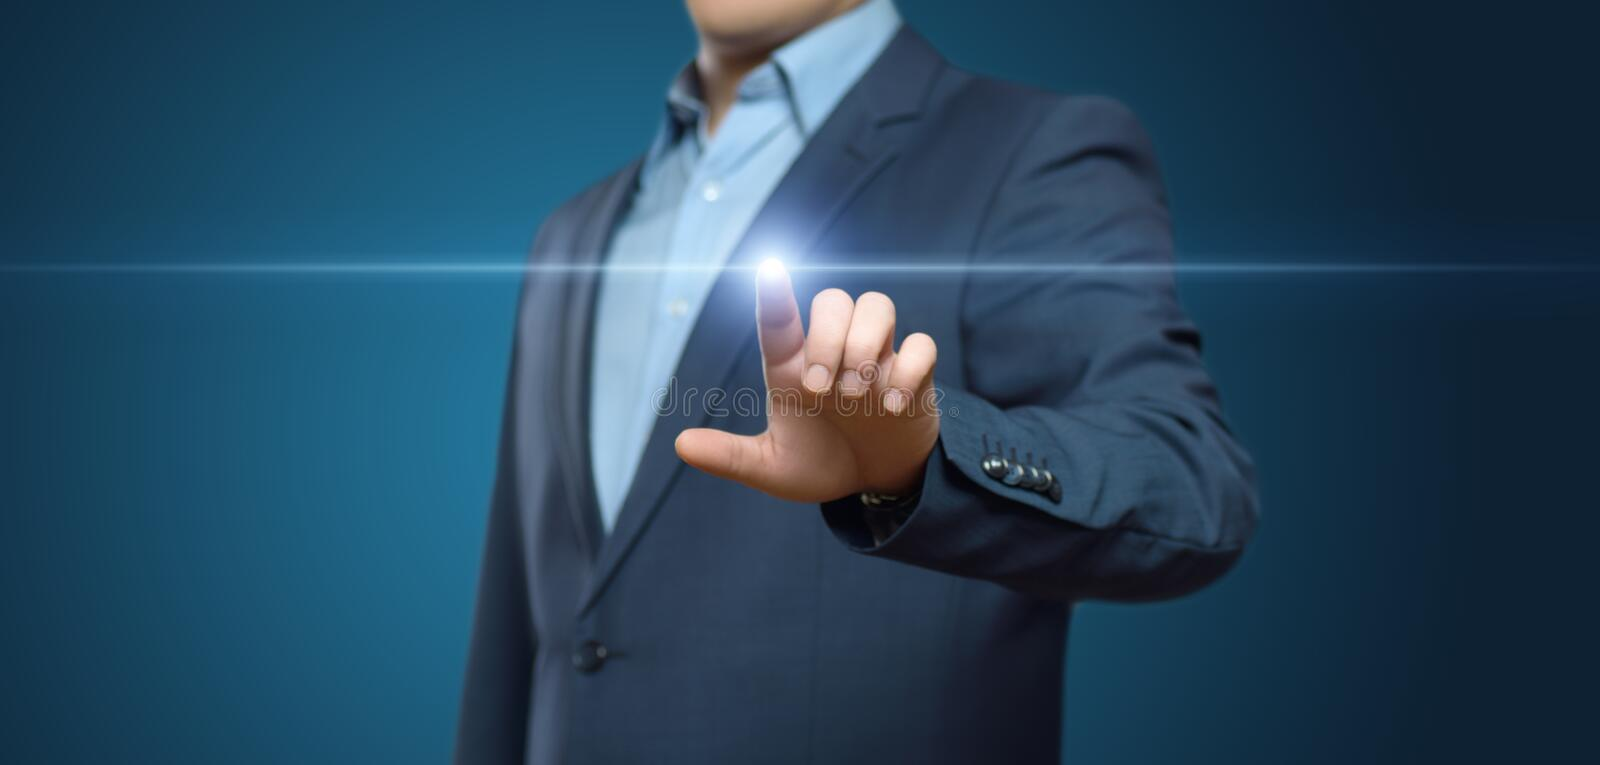 Businessman pressing button. Innovation technology internet business concept. Space for text.  royalty free stock photography